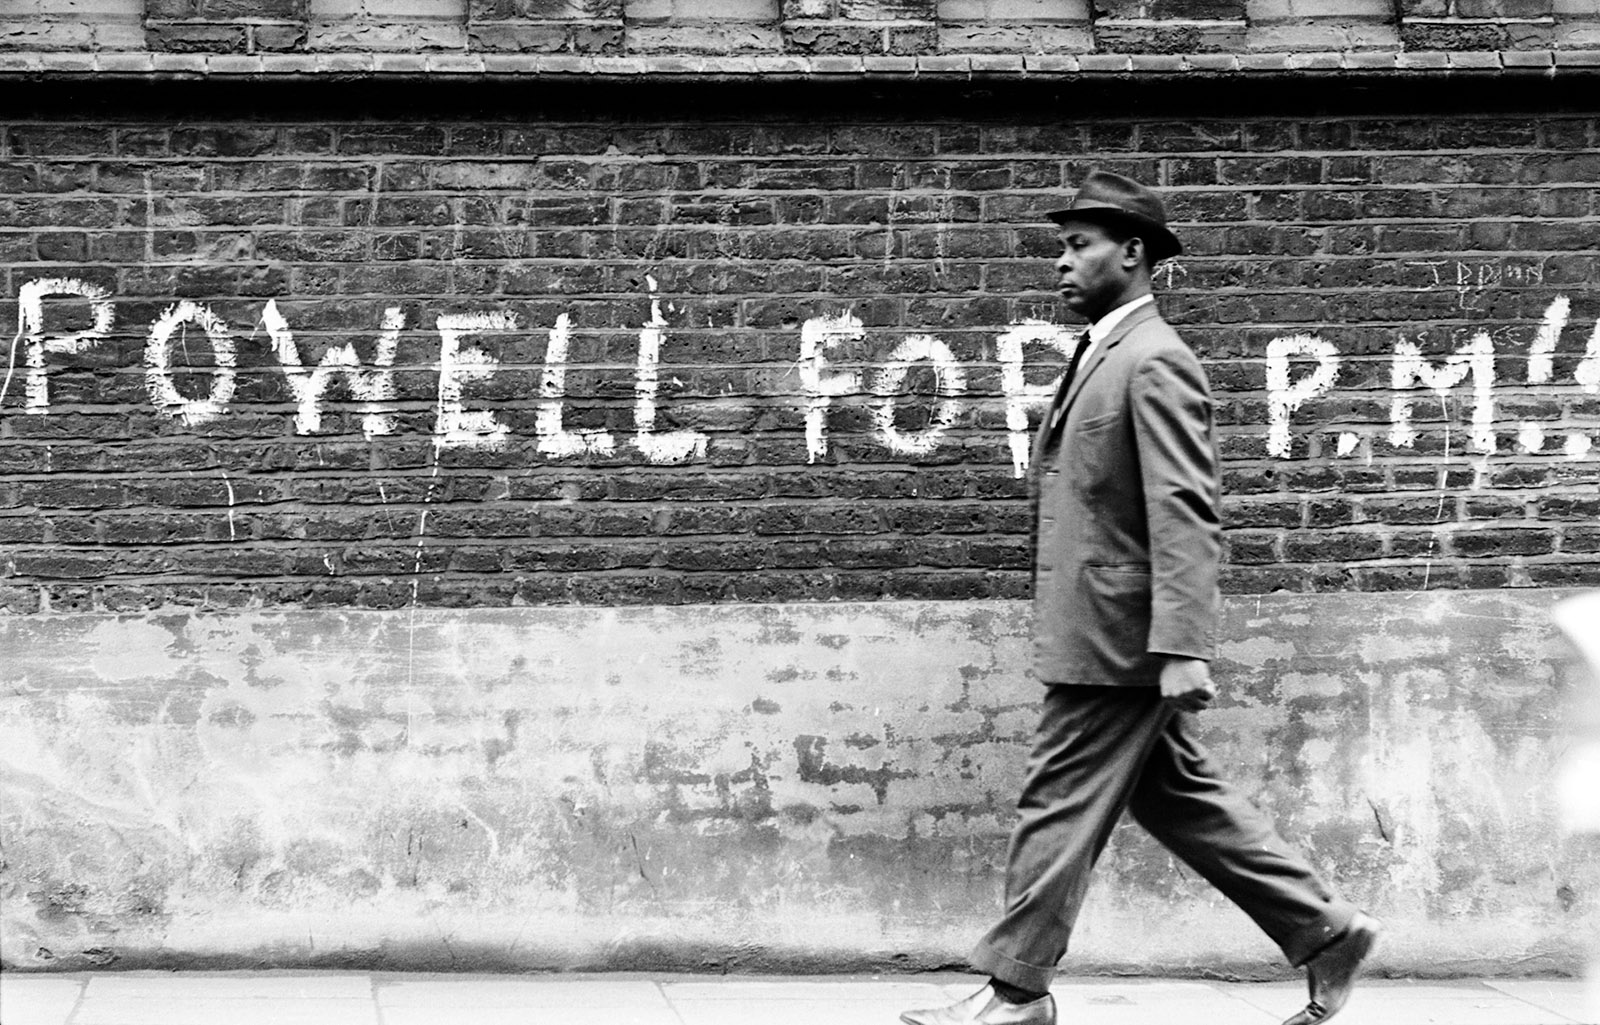 Graffiti expressing support for Enoch Powell after his inflammatory anti-immigration speech of April 20, 1968